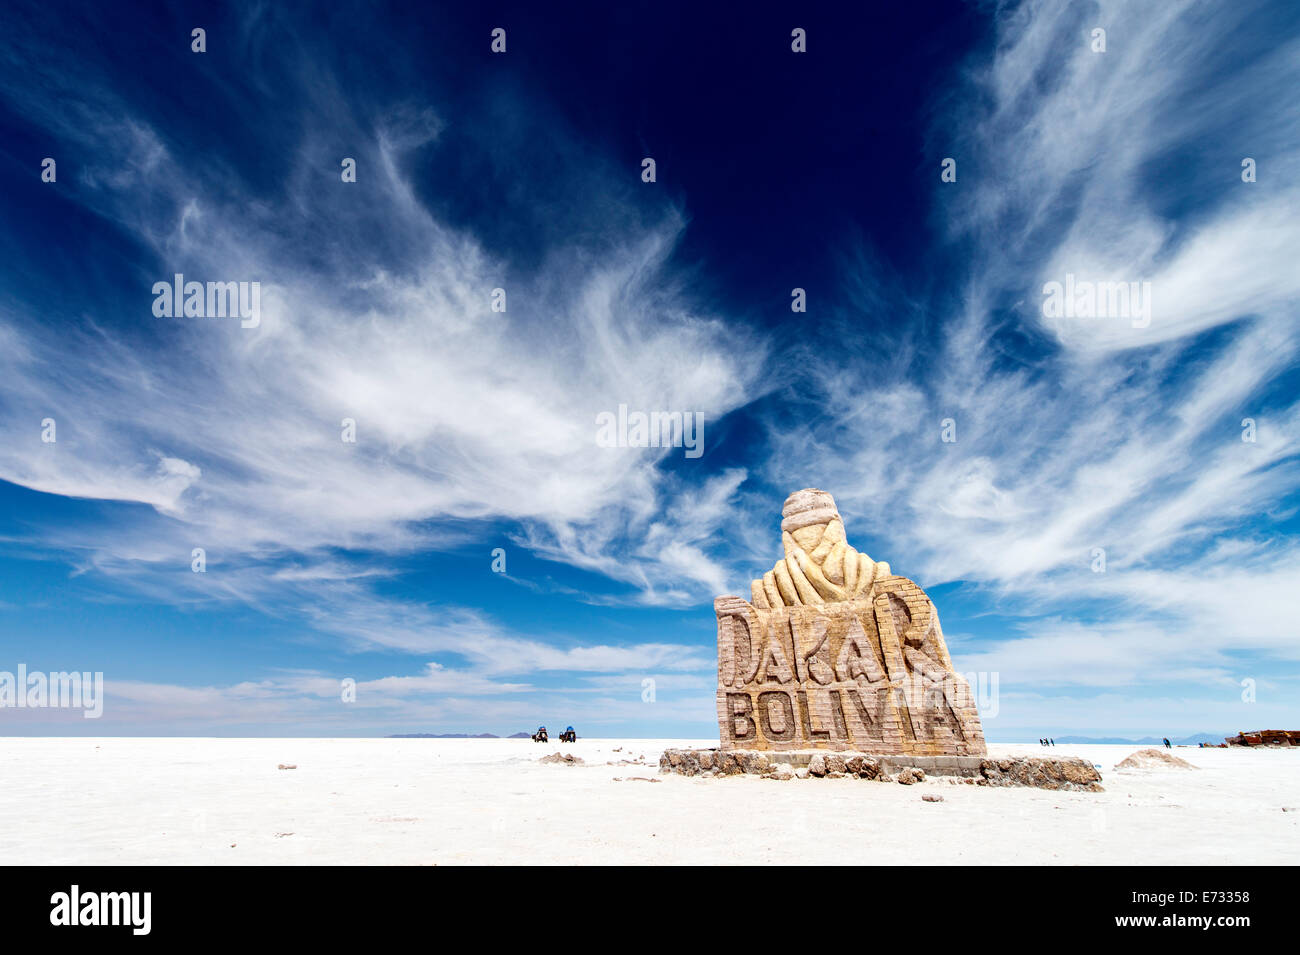 Dakar Rally monument Uyuni salt flats Potosi Bolivia South America - Stock Image